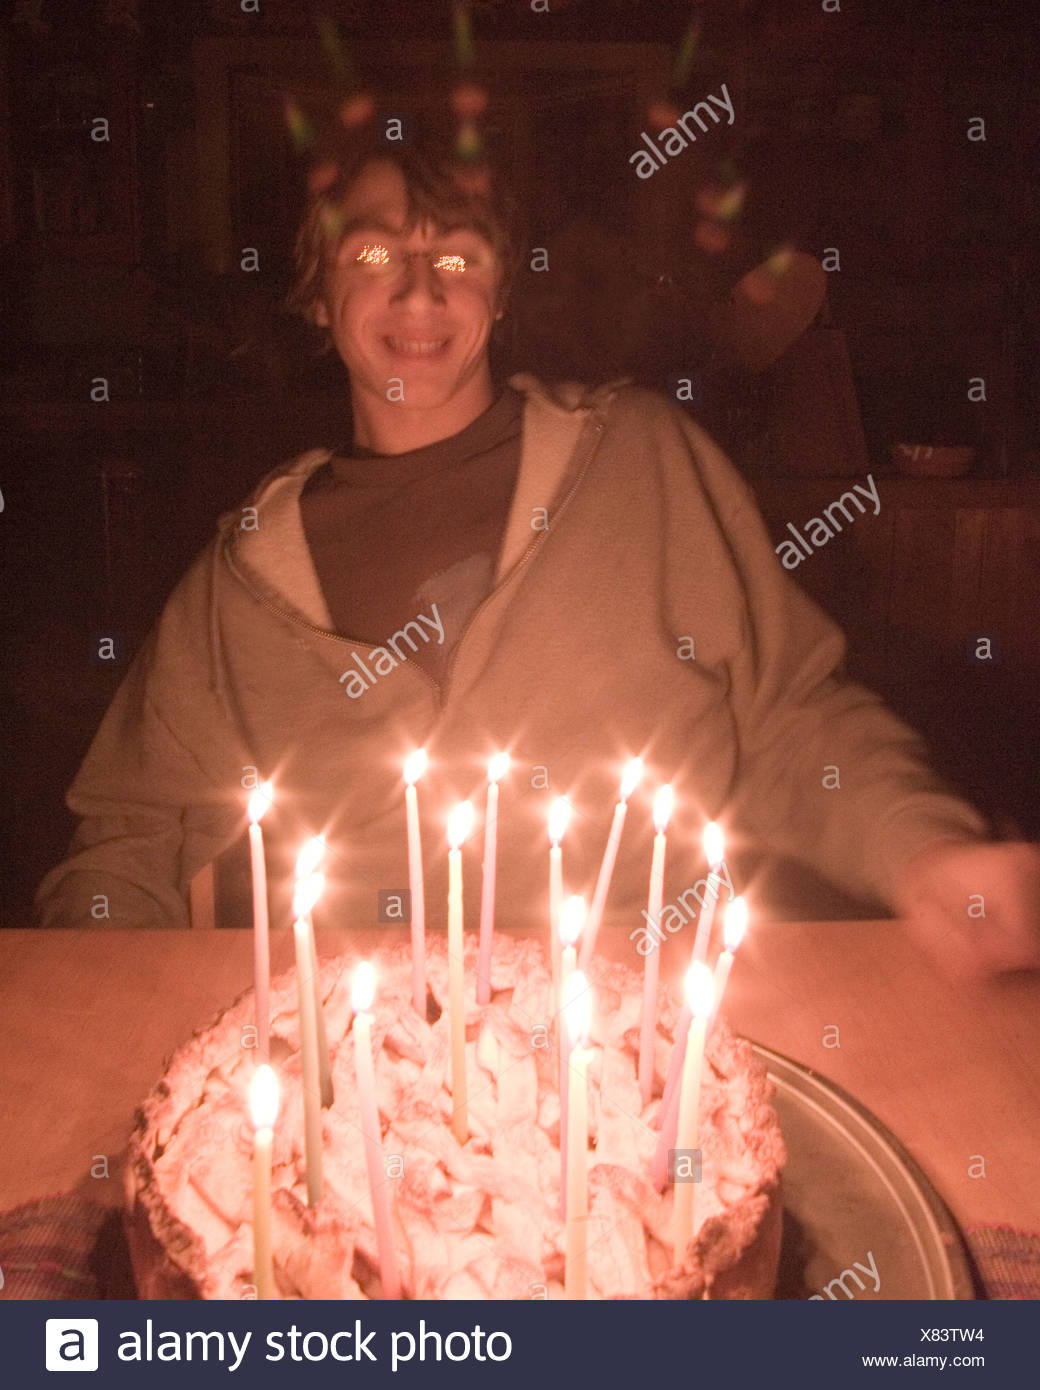 A Boy With His Birthday Cake And 16 Candles California Stock Photo